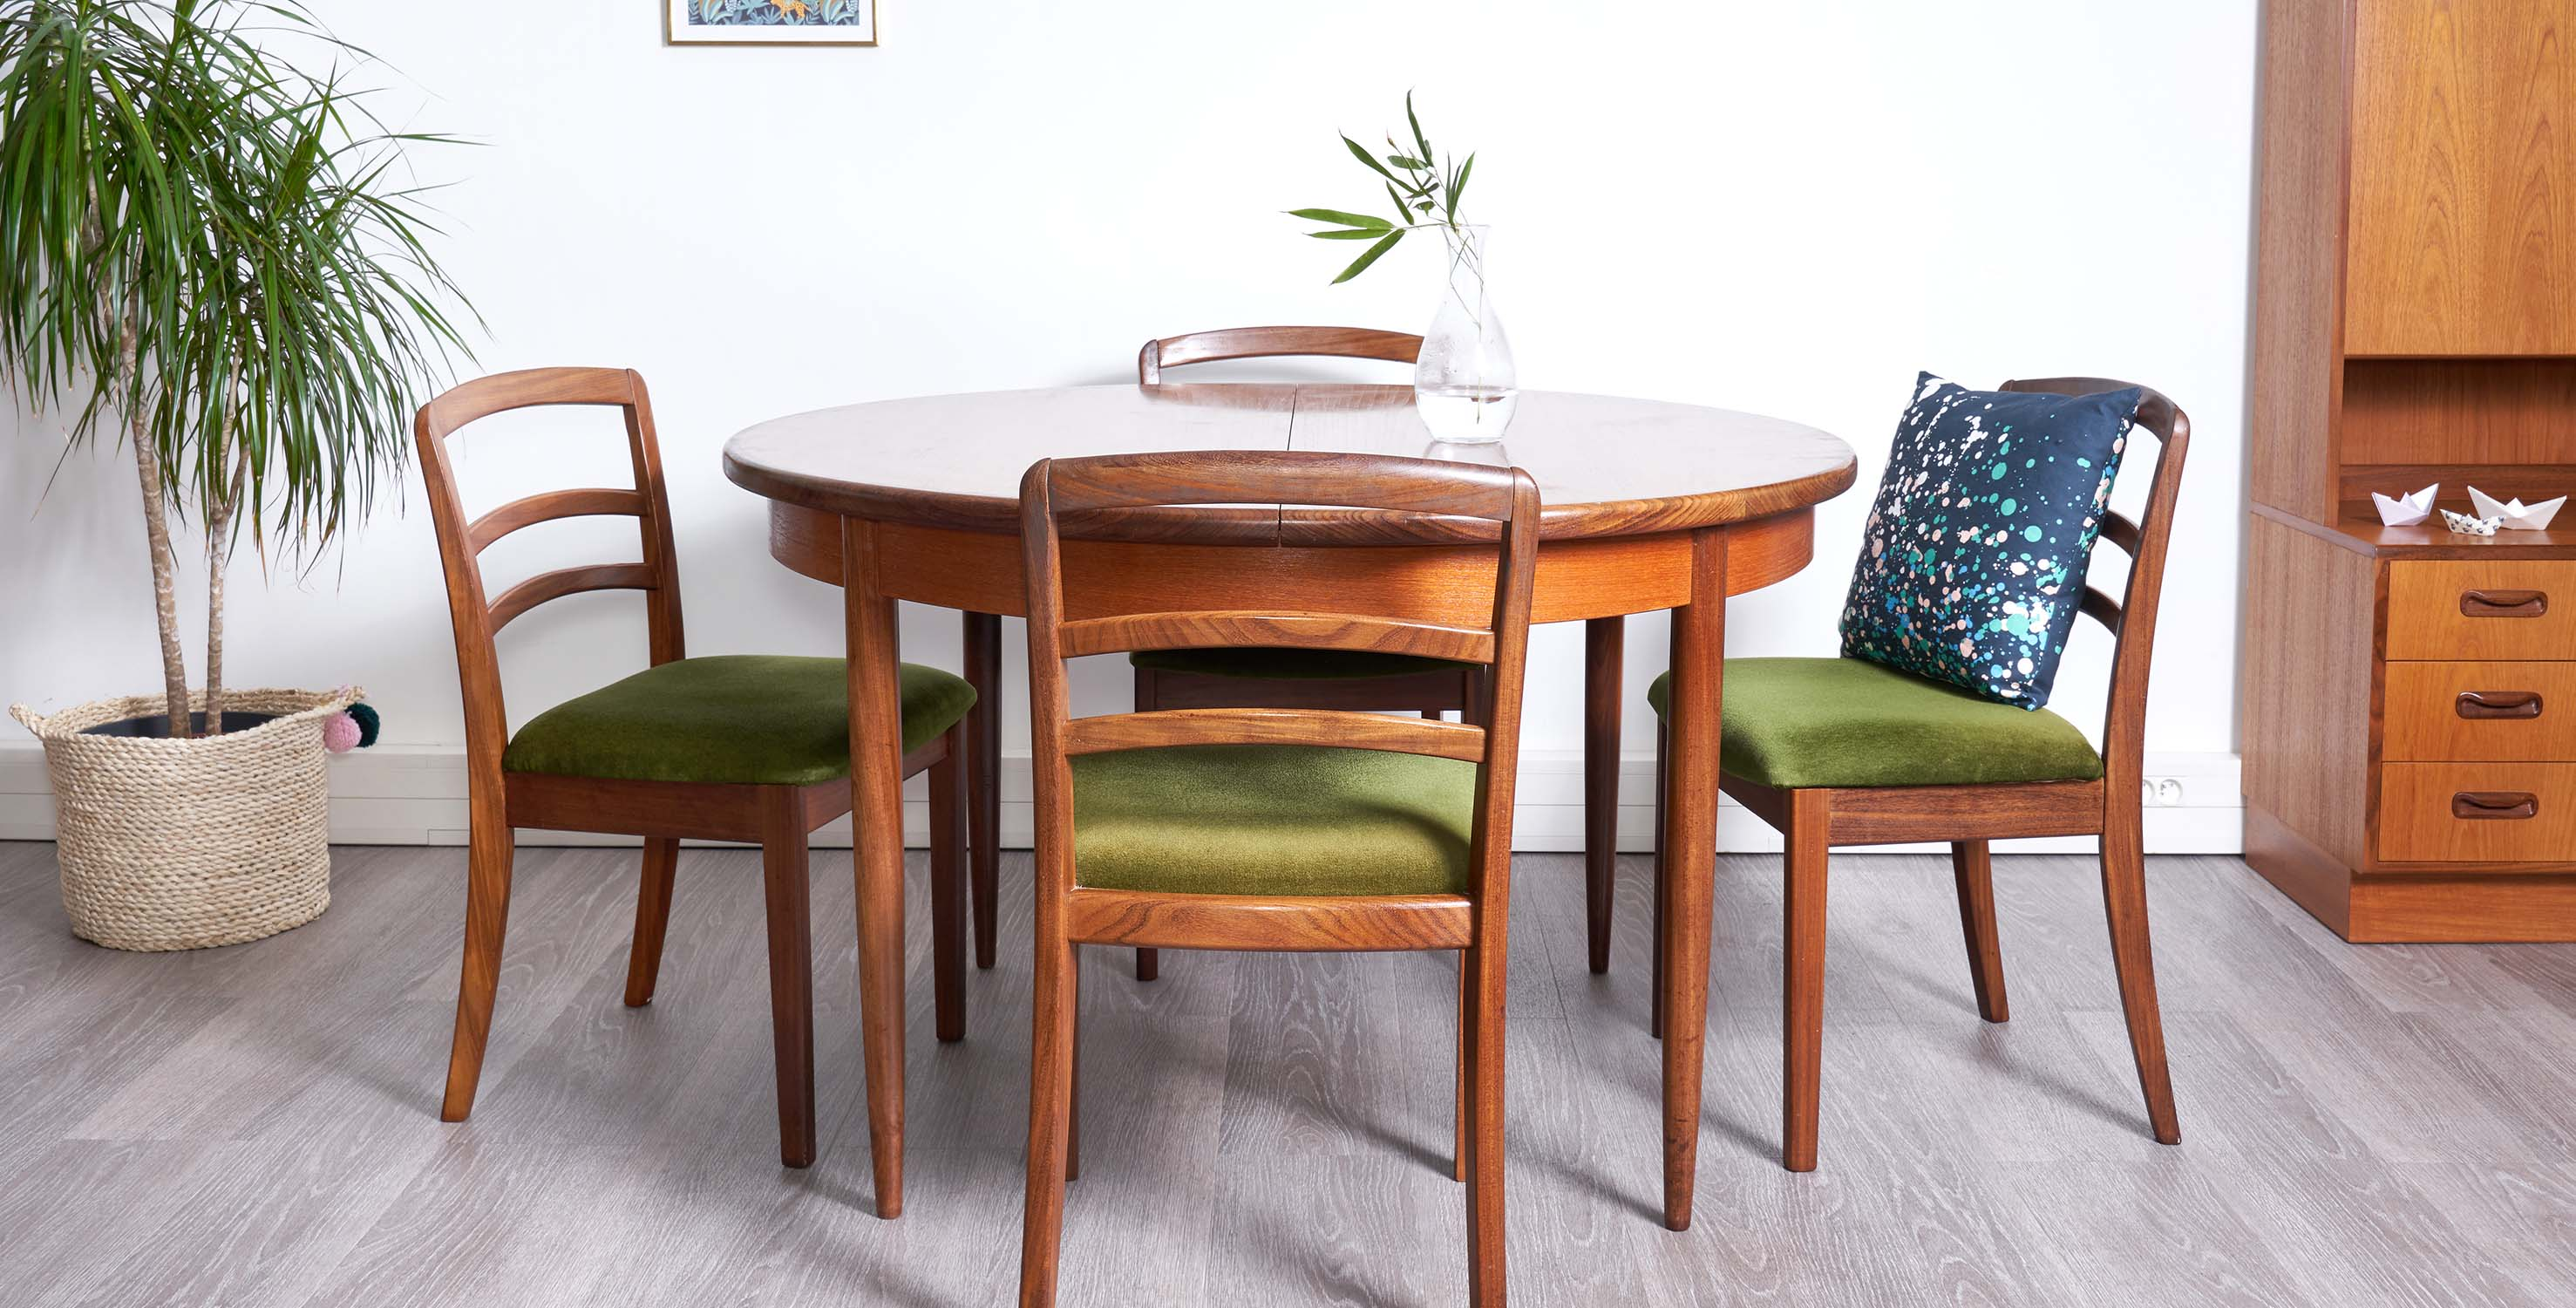 table a manger ronde extensible g plan 1960 style scandinave vendue room 30